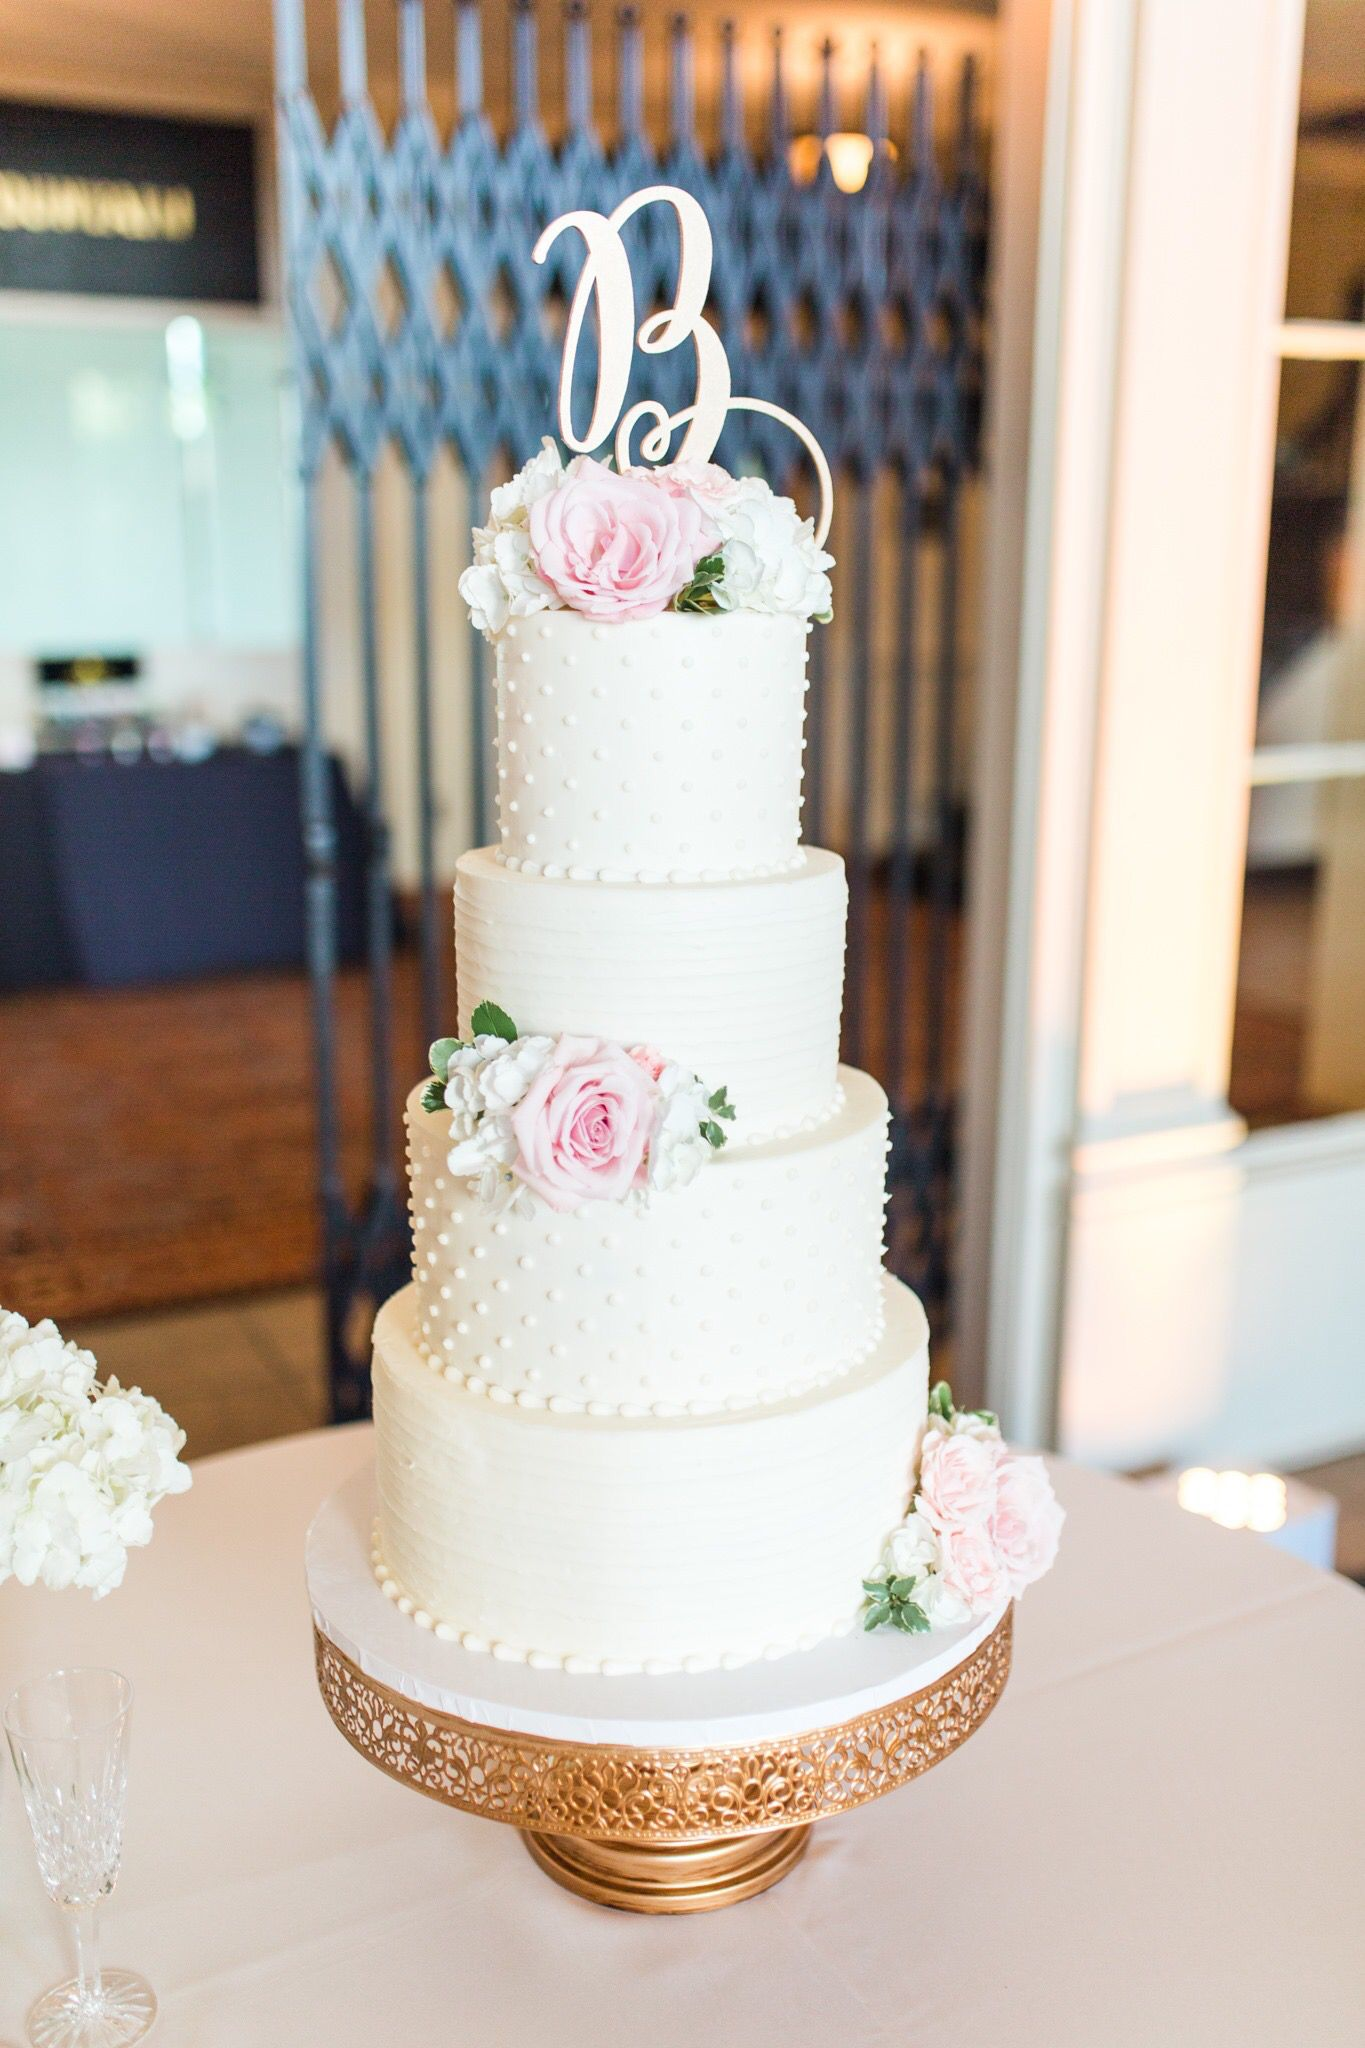 Cake By Thea Heussner Of Bakermama Photo By Sami Kathryn